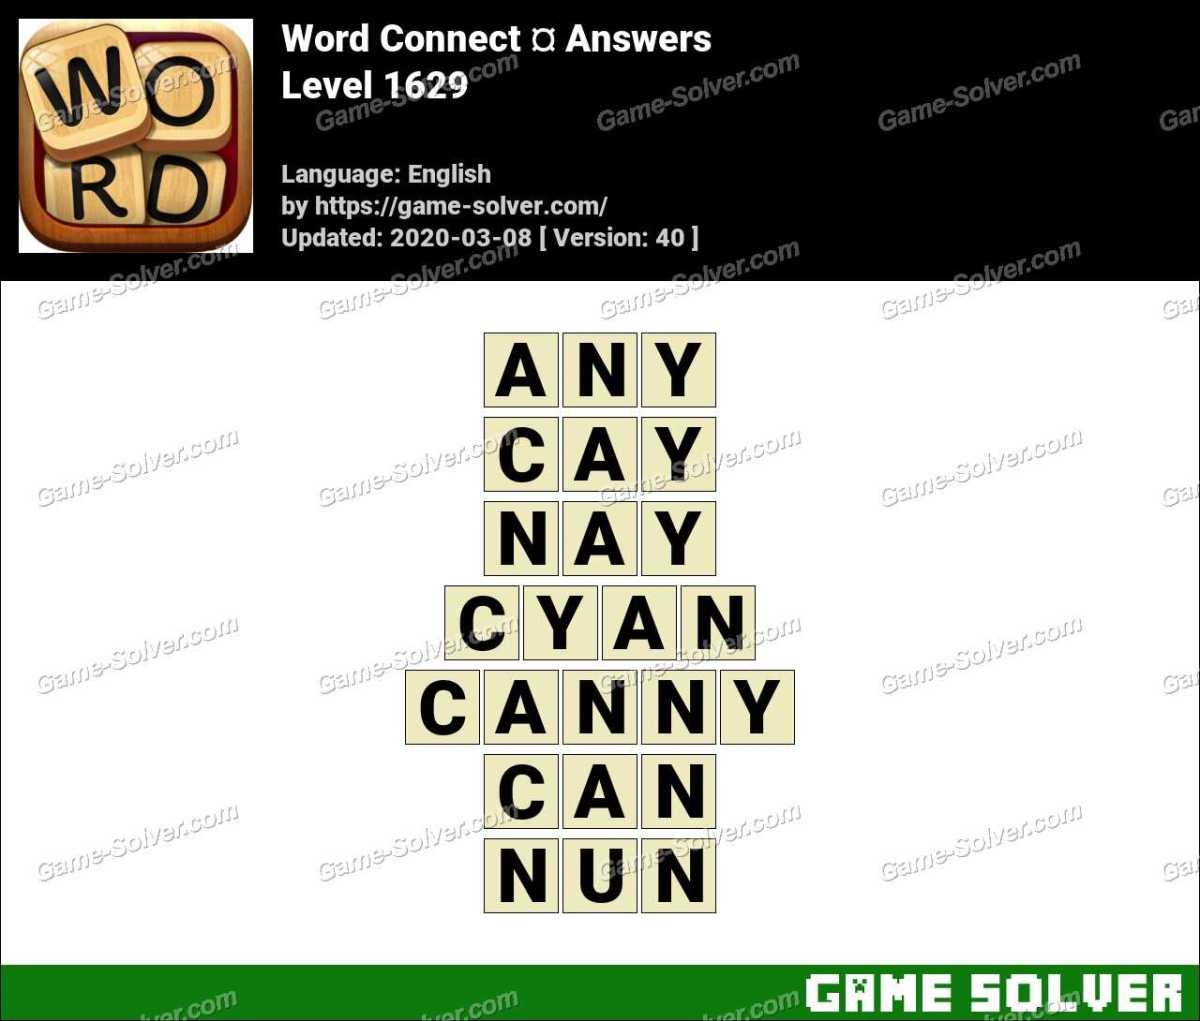 Word Connect Level 1629 Answers